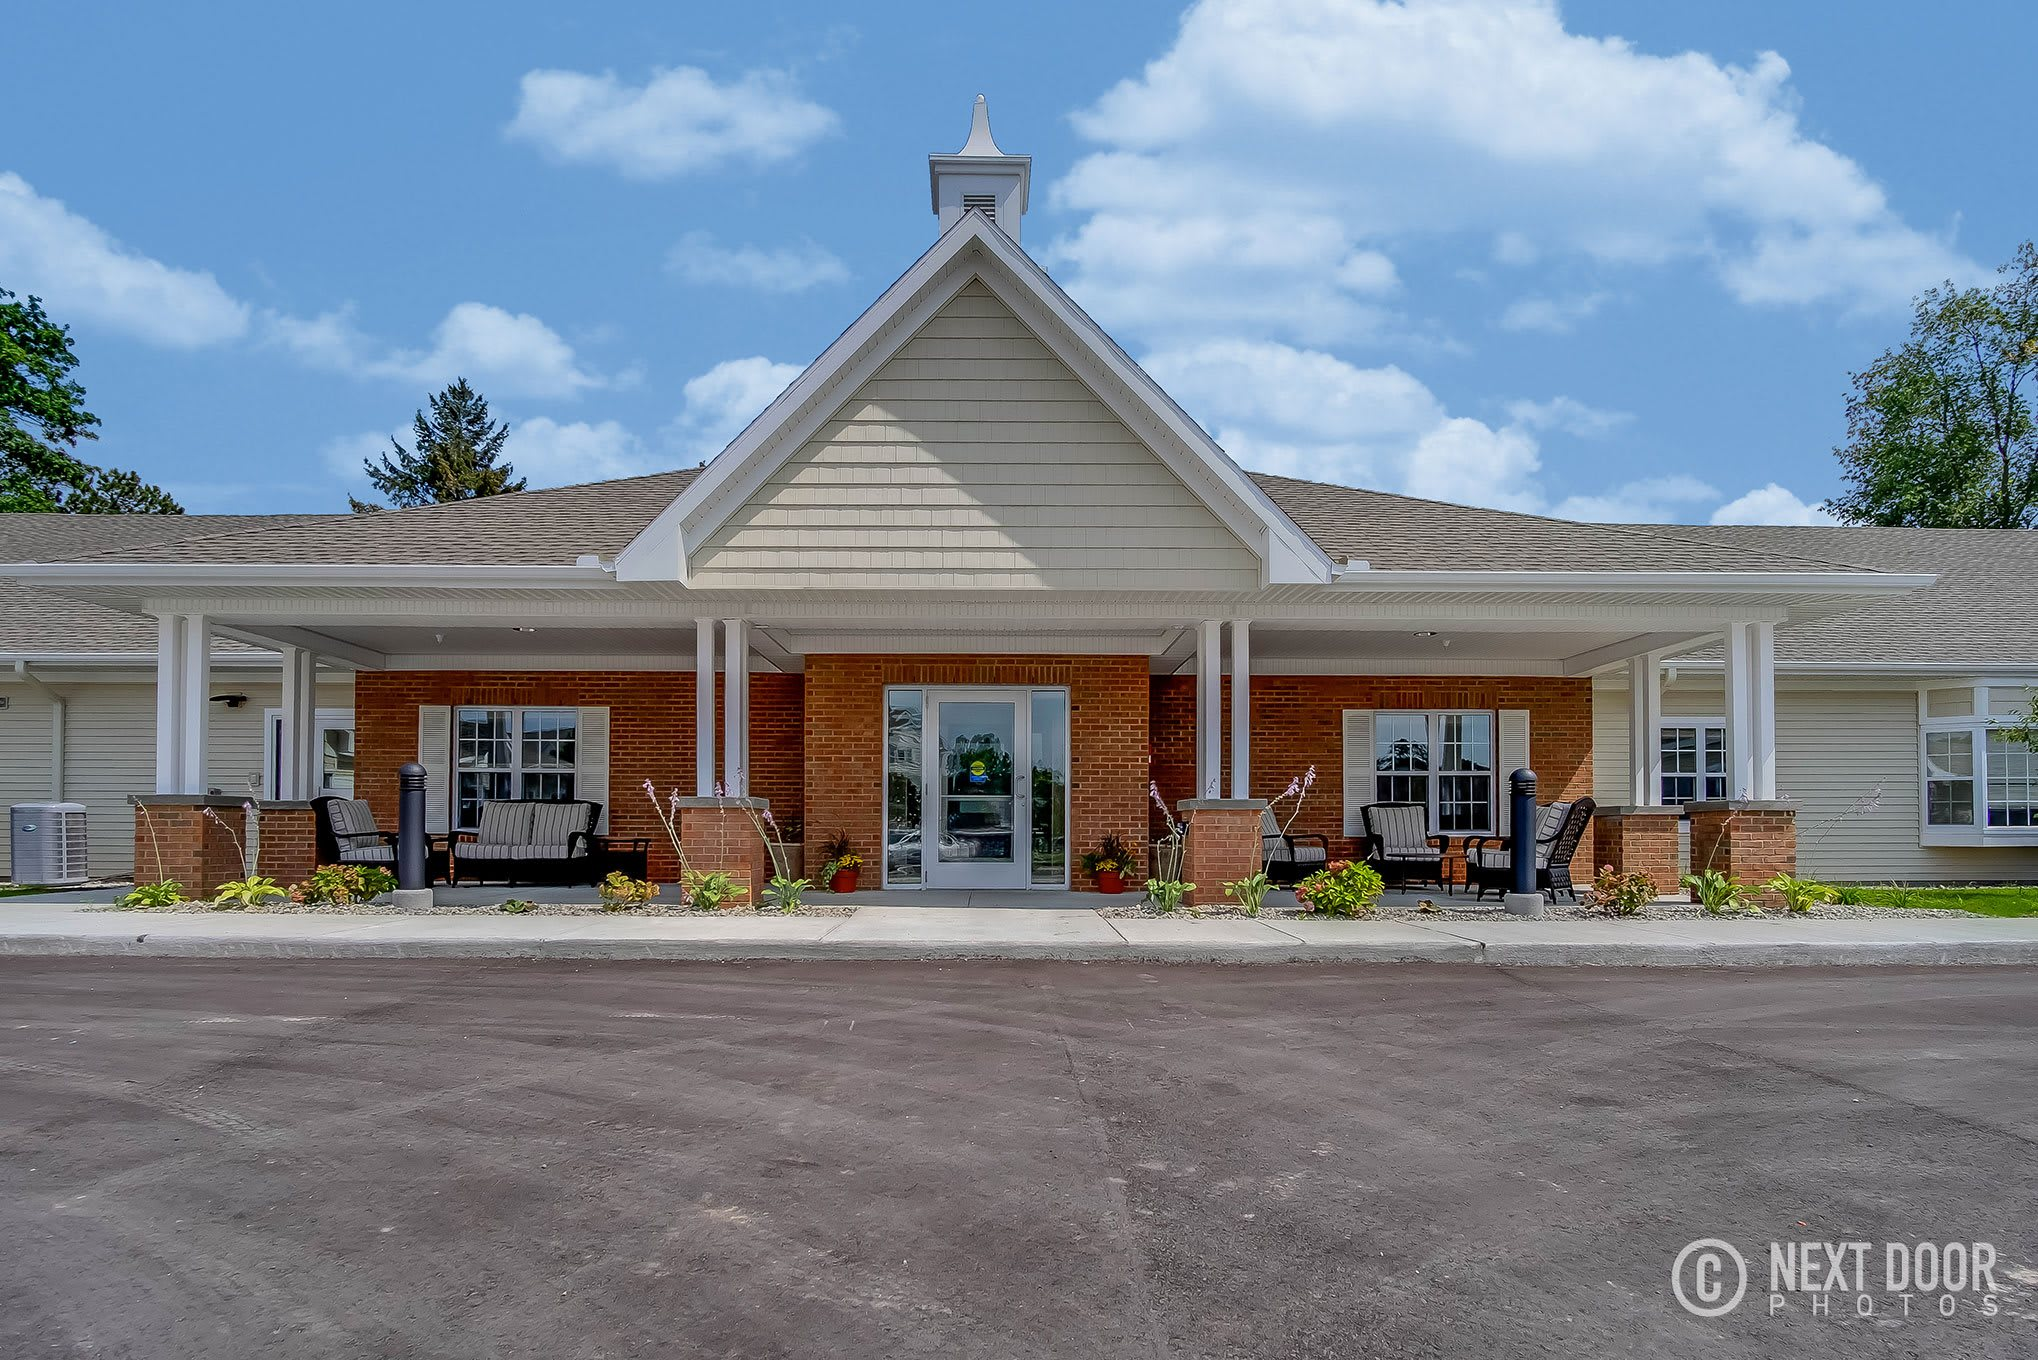 Photo 1 of Grandhaven Assisted Living & Memory Care